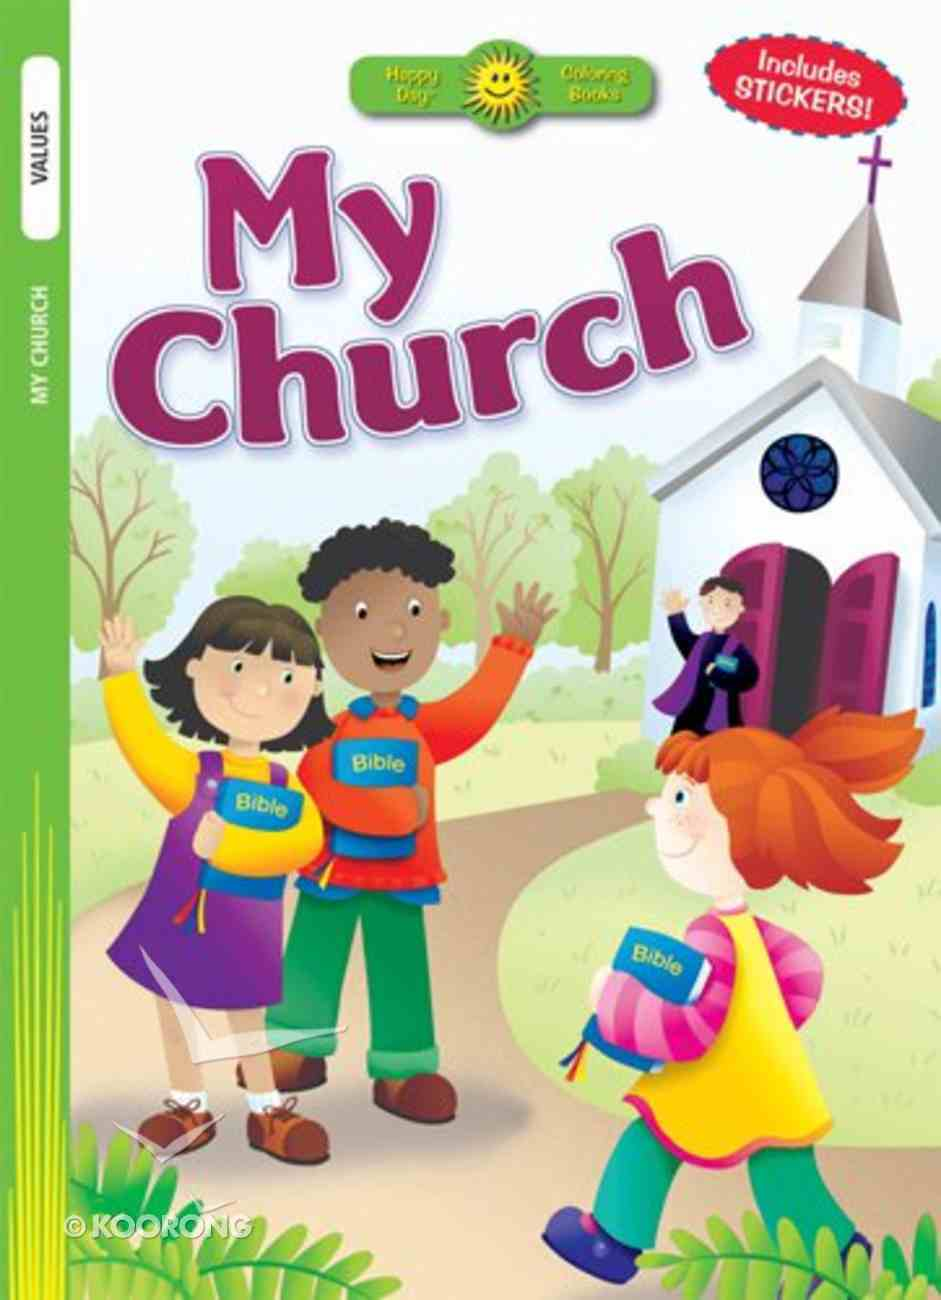 My Church (Includes Stickers) (Happy Day Colouring & Activity Series) Paperback